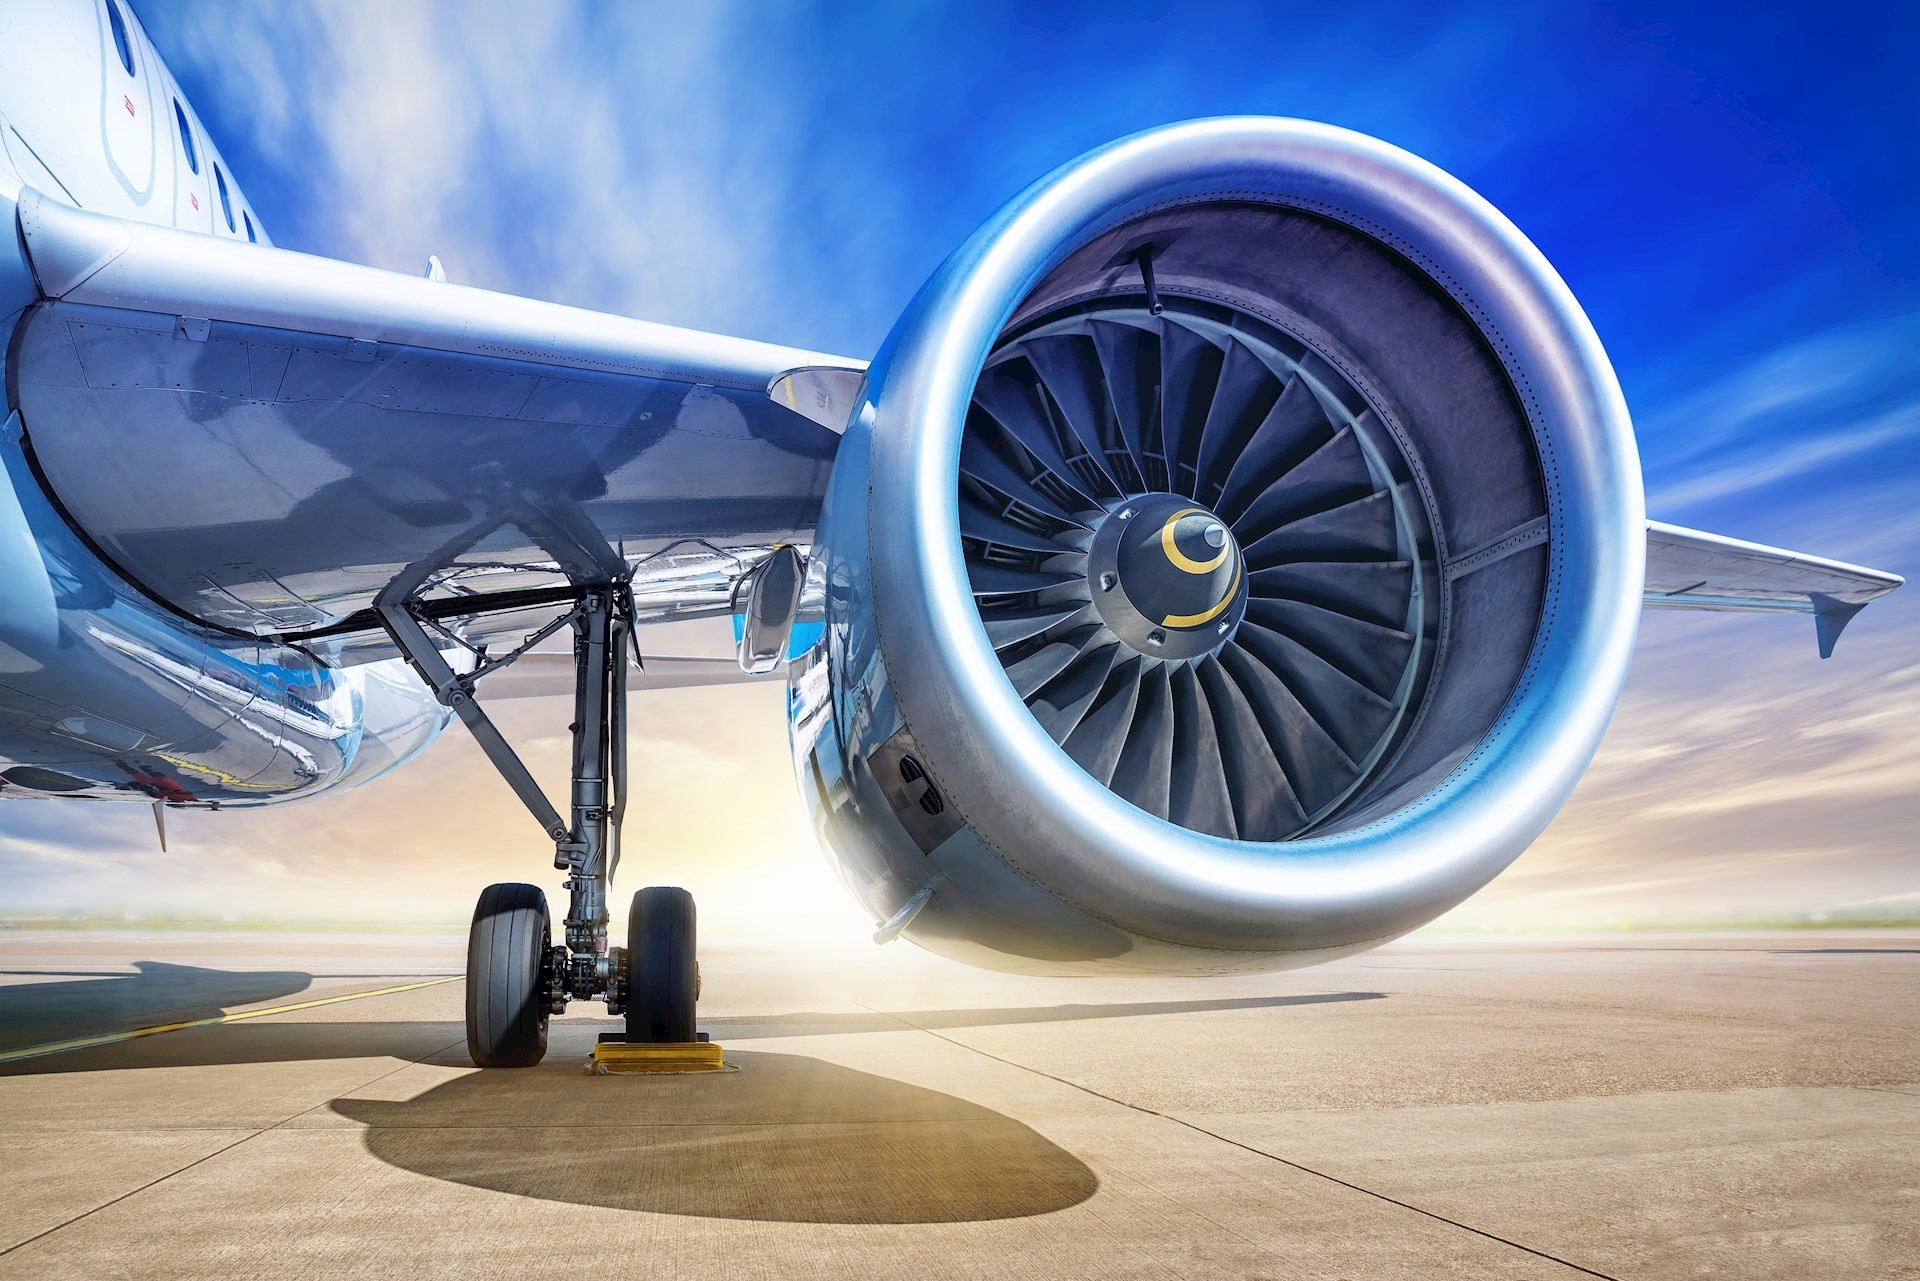 Maraging steel with 18% nickel content possesses the impact-fatigue strength required for aircraft landing gear